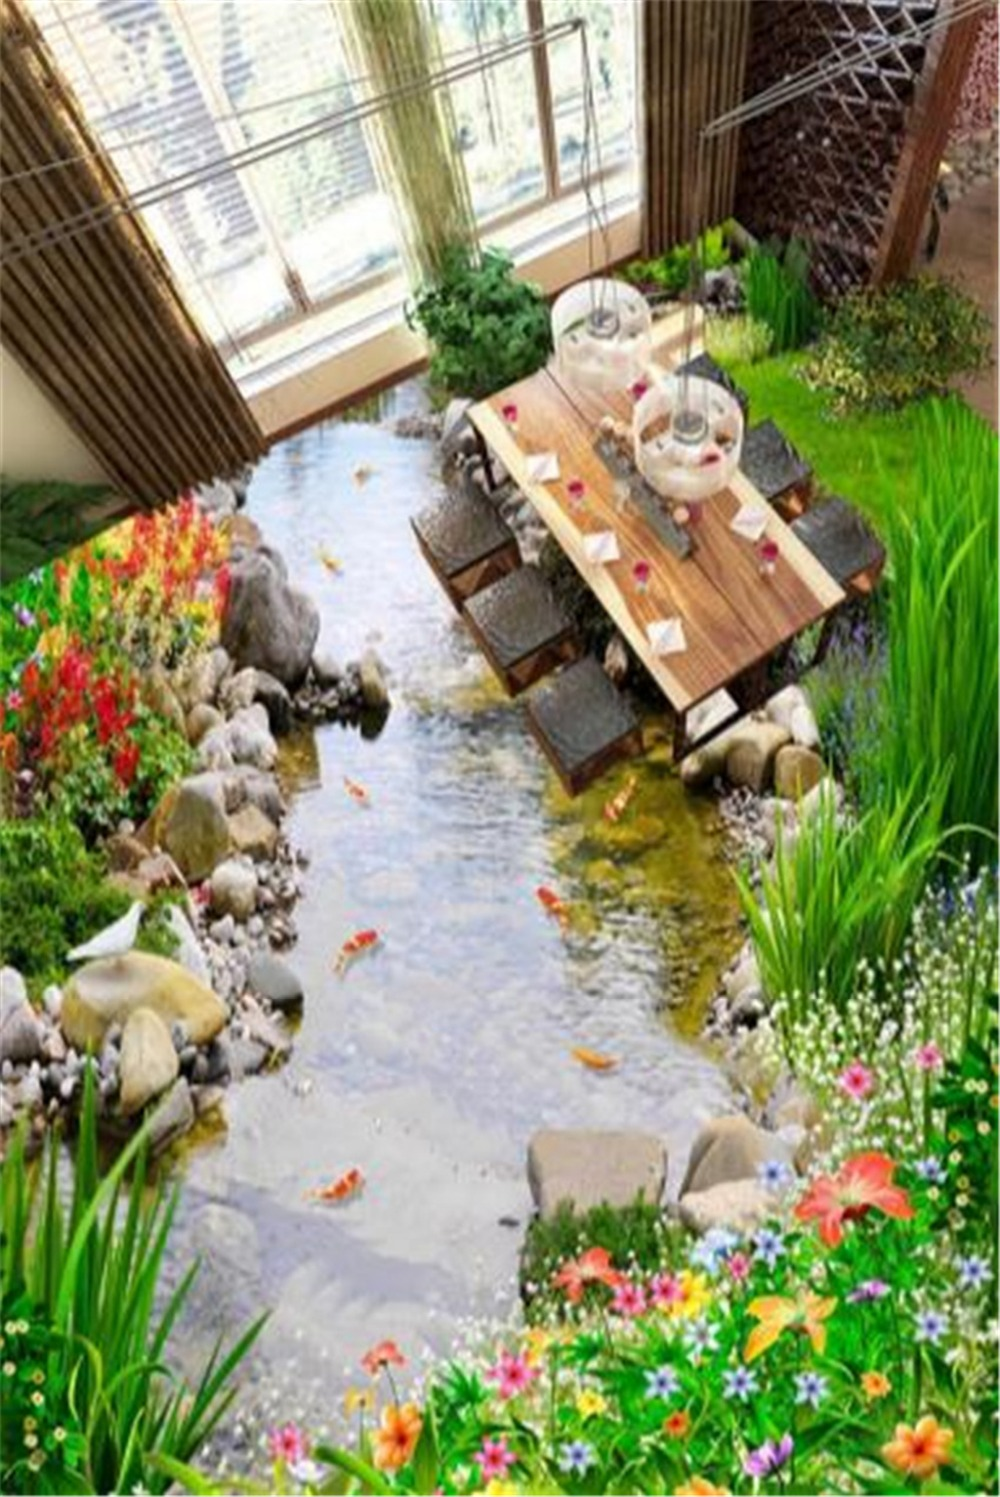 Custom Any Size 3D Mural Wallpa  Mysterious Garden, Small River, Water 3D Floor Interior Wallpaper MuralCustom Any Size 3D Mural Wallpa  Mysterious Garden, Small River, Water 3D Floor Interior Wallpaper Mural